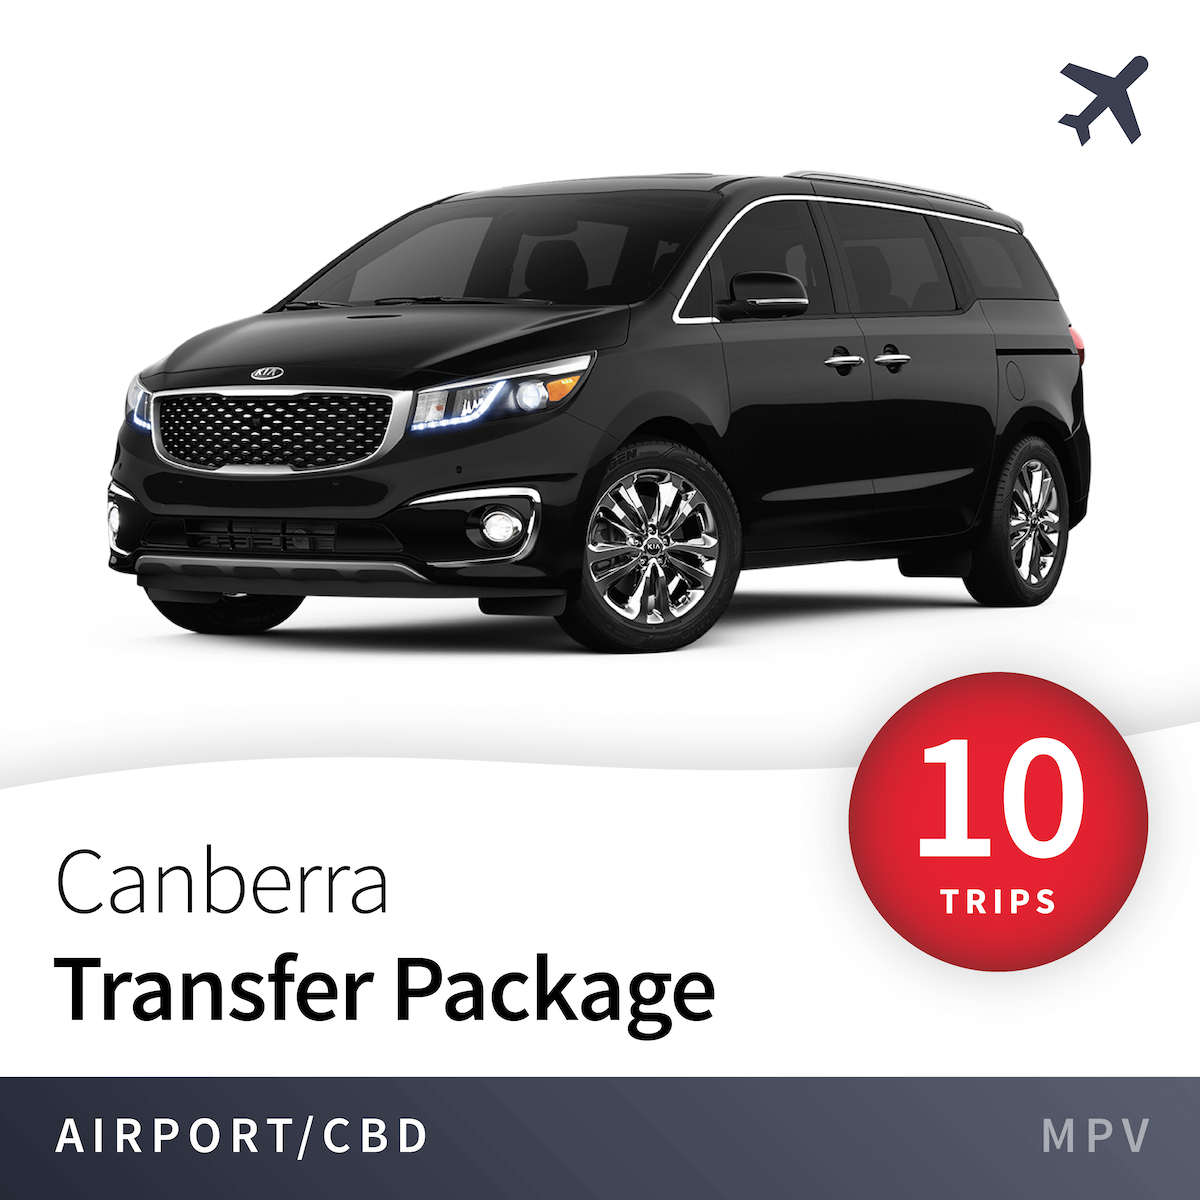 Canberra Airport Transfer Package - MPV (10 Trips) 5